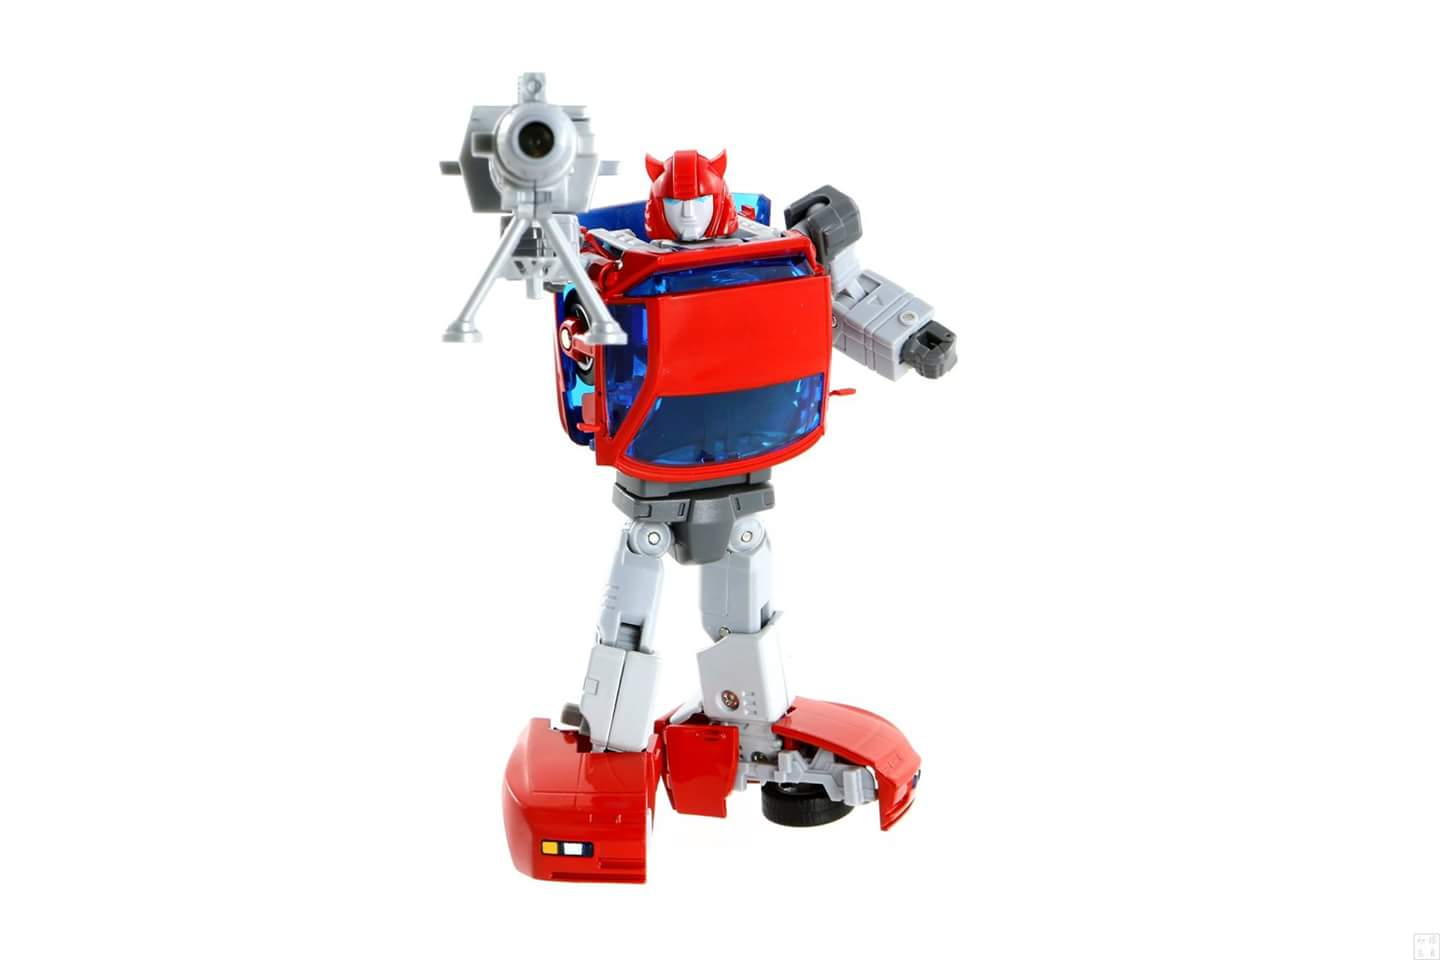 [ACE Collectables] Produit Tiers - Minibots MP - ACE-01 Tumbler (aka Cliffjumper/Matamore), ACE-02 Hiccups (aka Hubcap/Virevolto), ACE-03 Trident (aka Seaspray/Embruns) 81vDyZMe